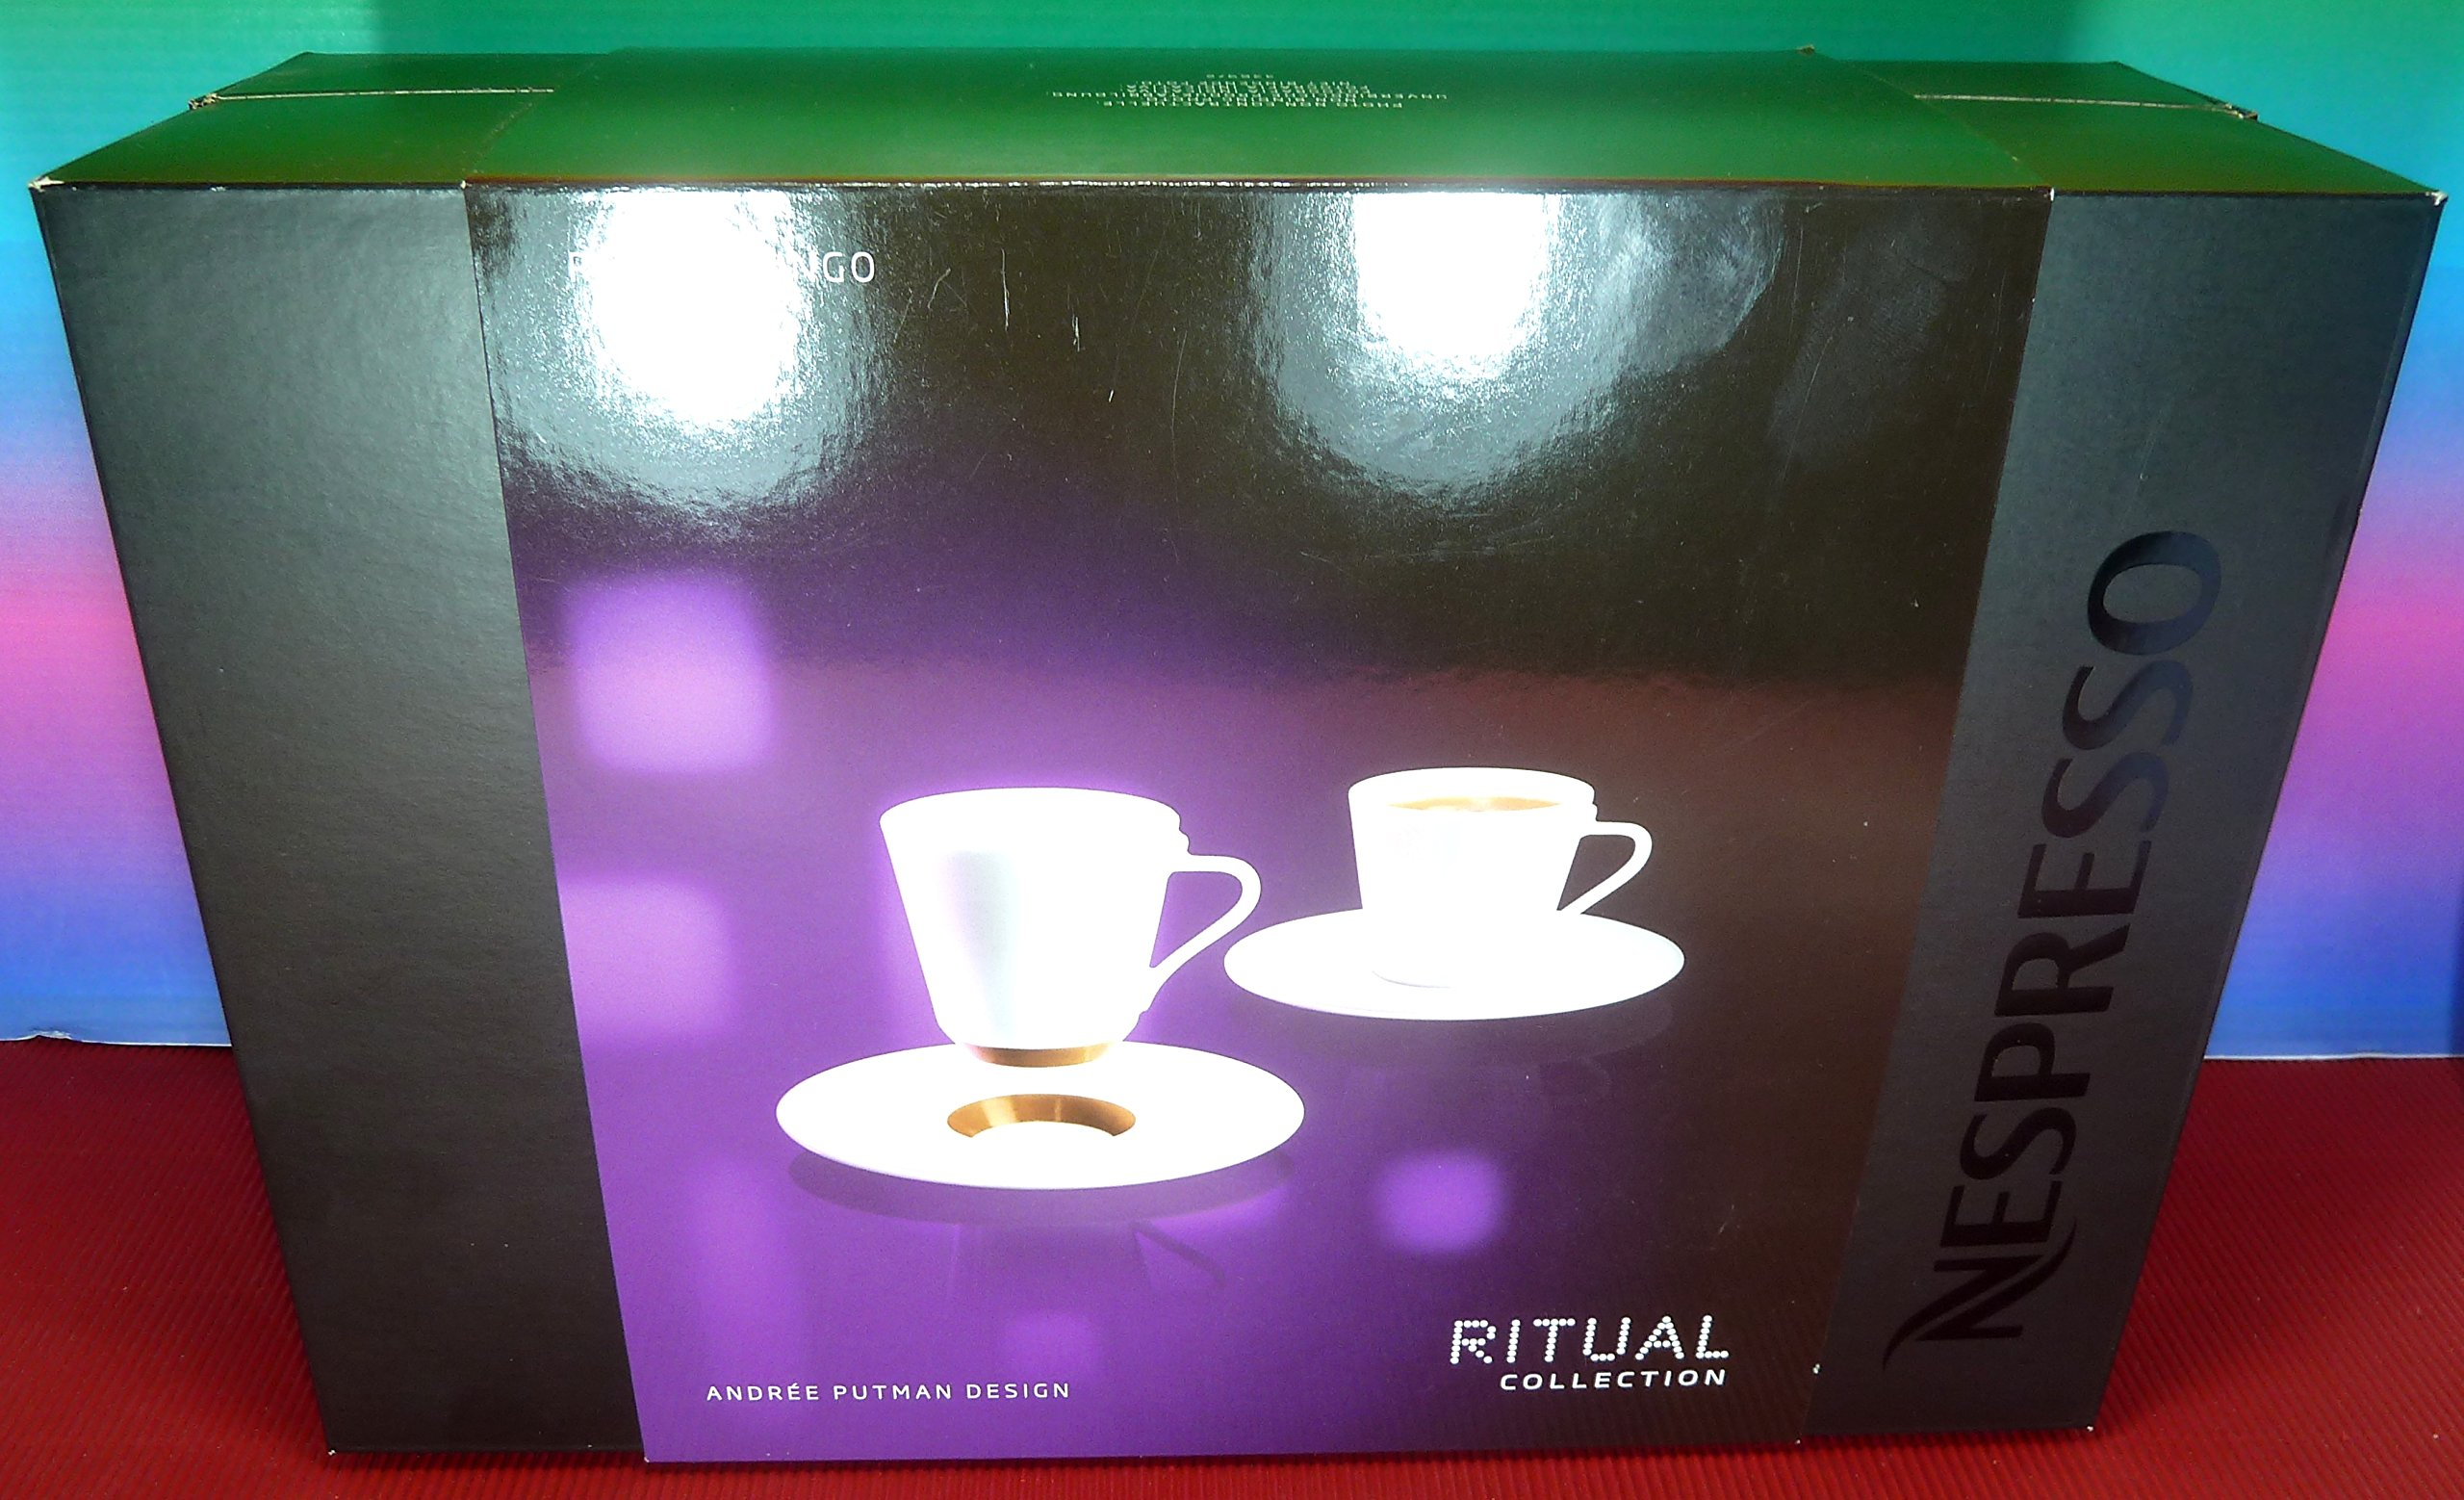 Nespresso Set 2 Ritual Lungo Porcelain Cups With Saucers,Andree Putman Design,Ritual Collection , New